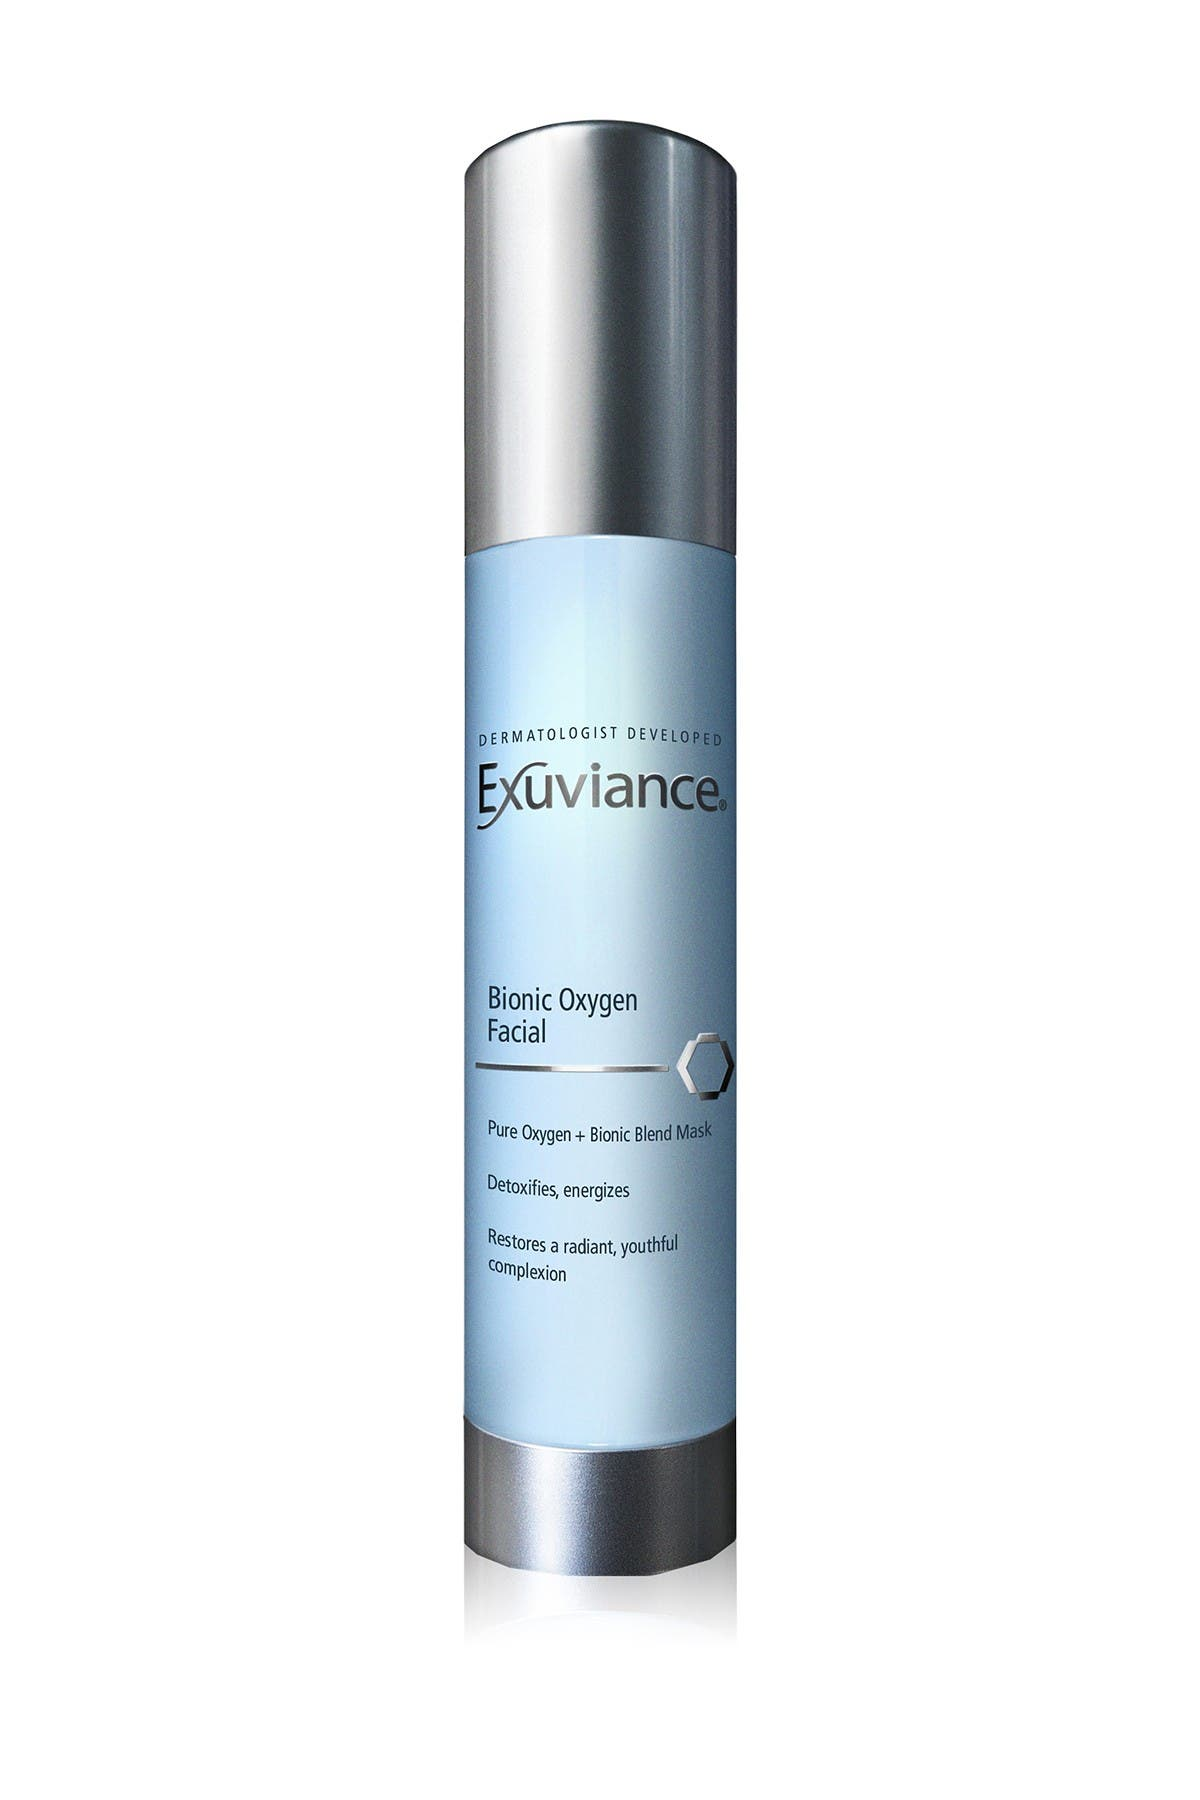 Image of Exuviance Skin Care Bionic Oxygen Facial